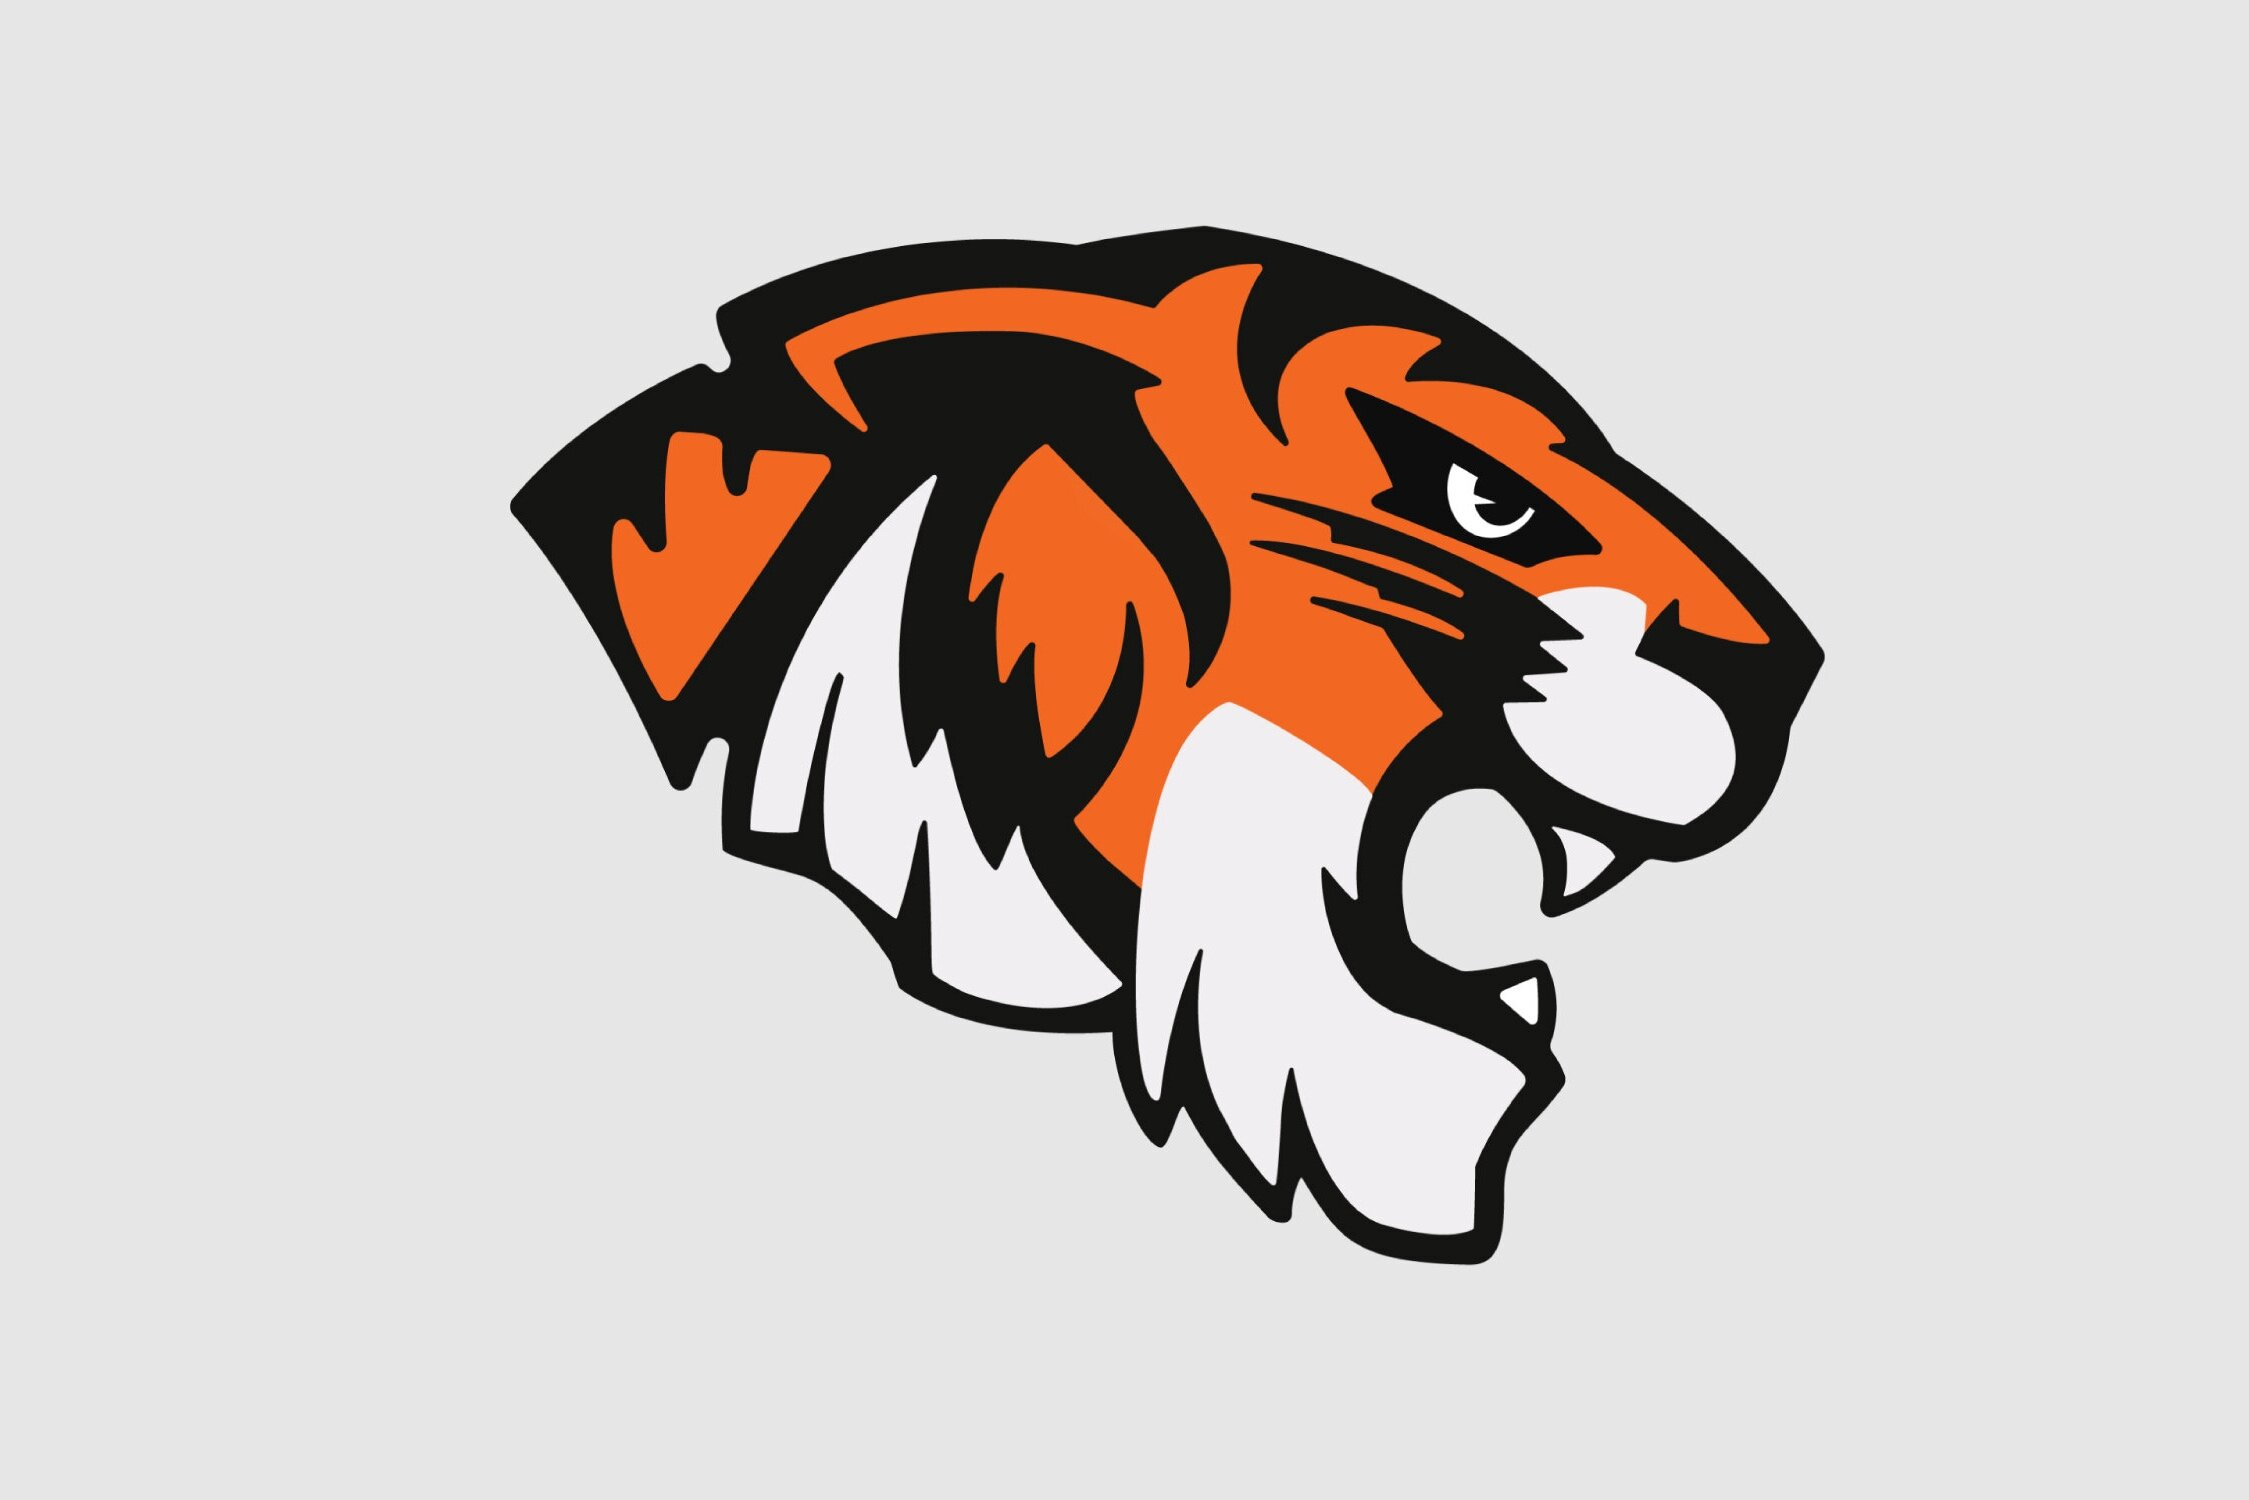 TIMOTHY TIGER - Timothy Tiger became the official Wasatch Academy mascot in 2019, yet the iconic Tiger has represented our school in various forms since the late 19th century.